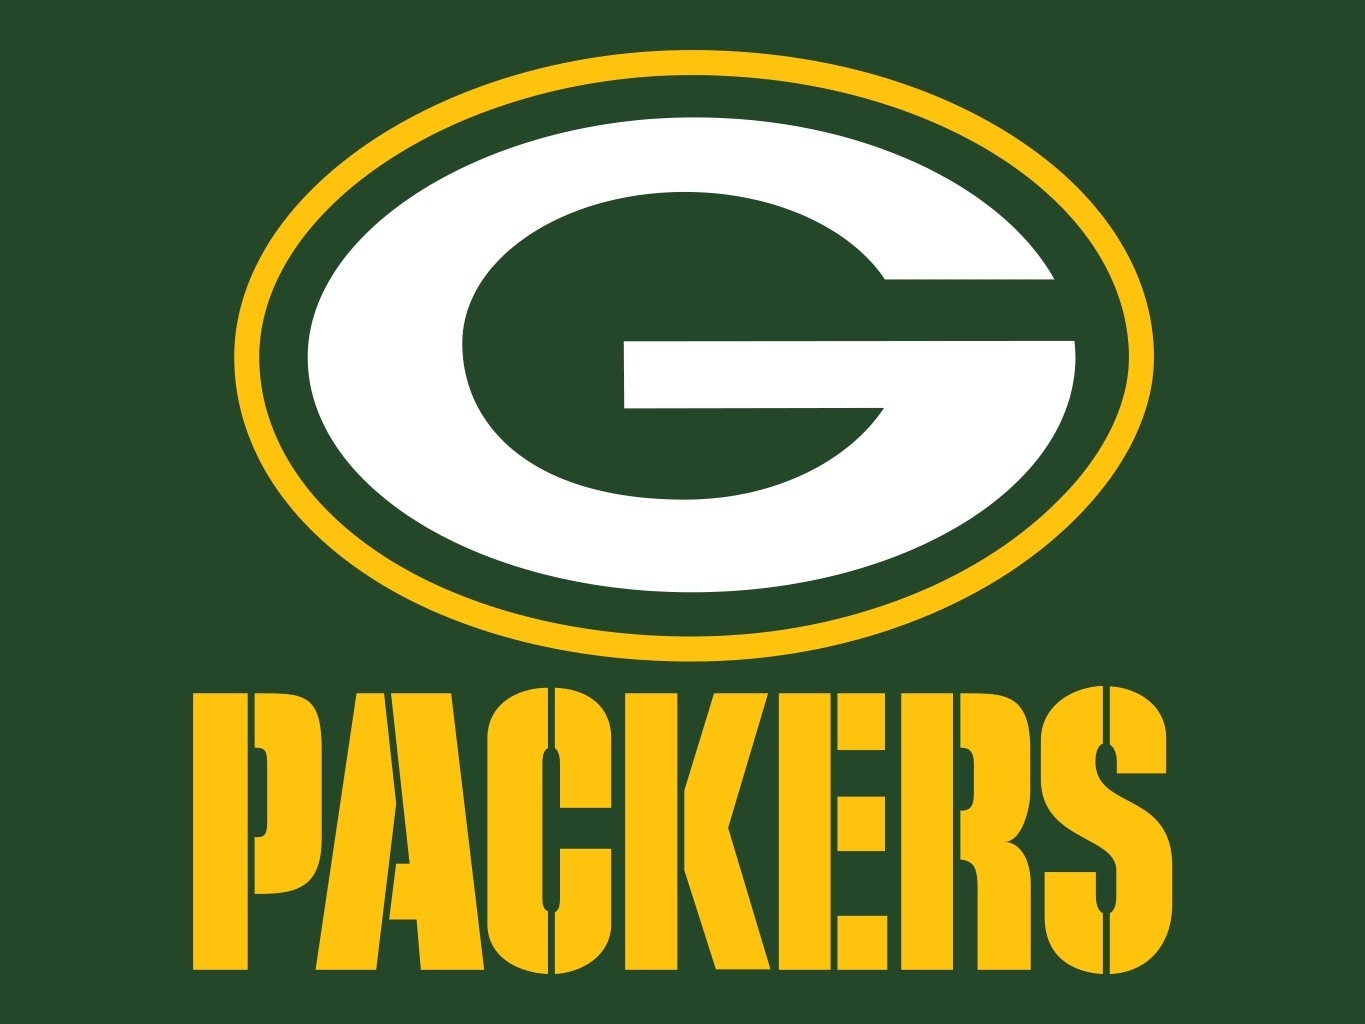 Green Bay Packers Nfl Football Team Located - Bestofhouse | #6992 - Free Printable Green Bay Packers Logo